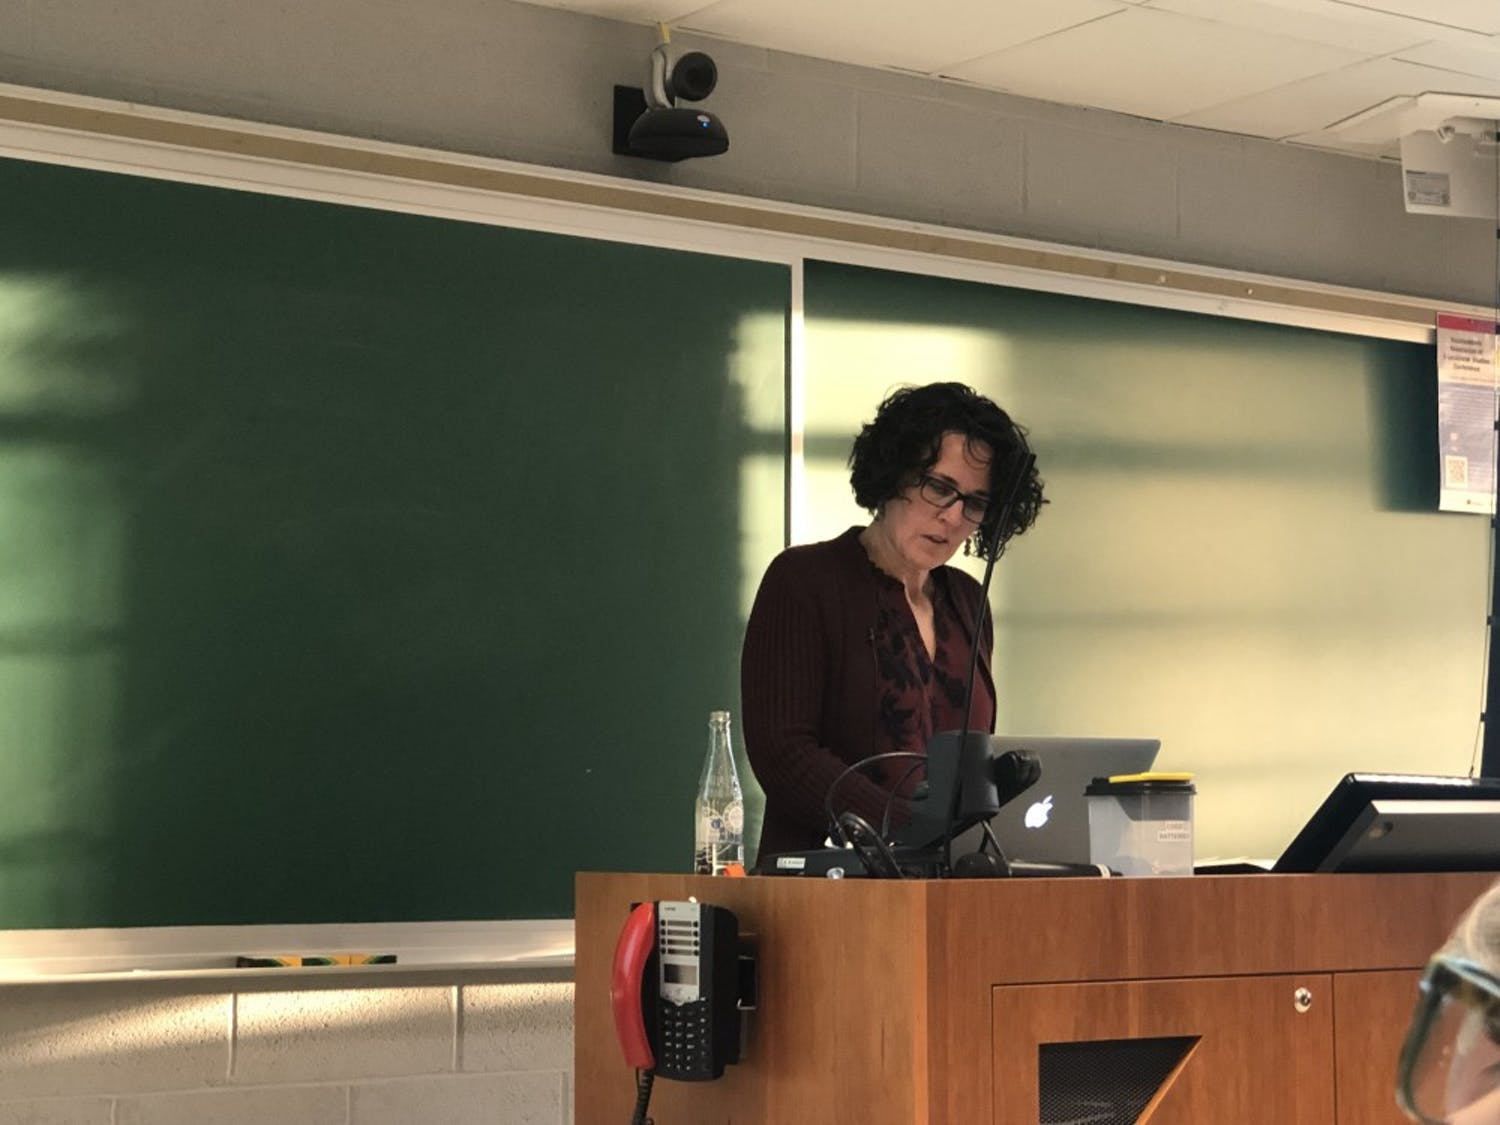 North Carolina State University Professor Paula McAvoy speaks about ethics in the classroom, particularly between instructors and students during discussions on Feb. 25, 2019. Photo by Rachel Crumpler.